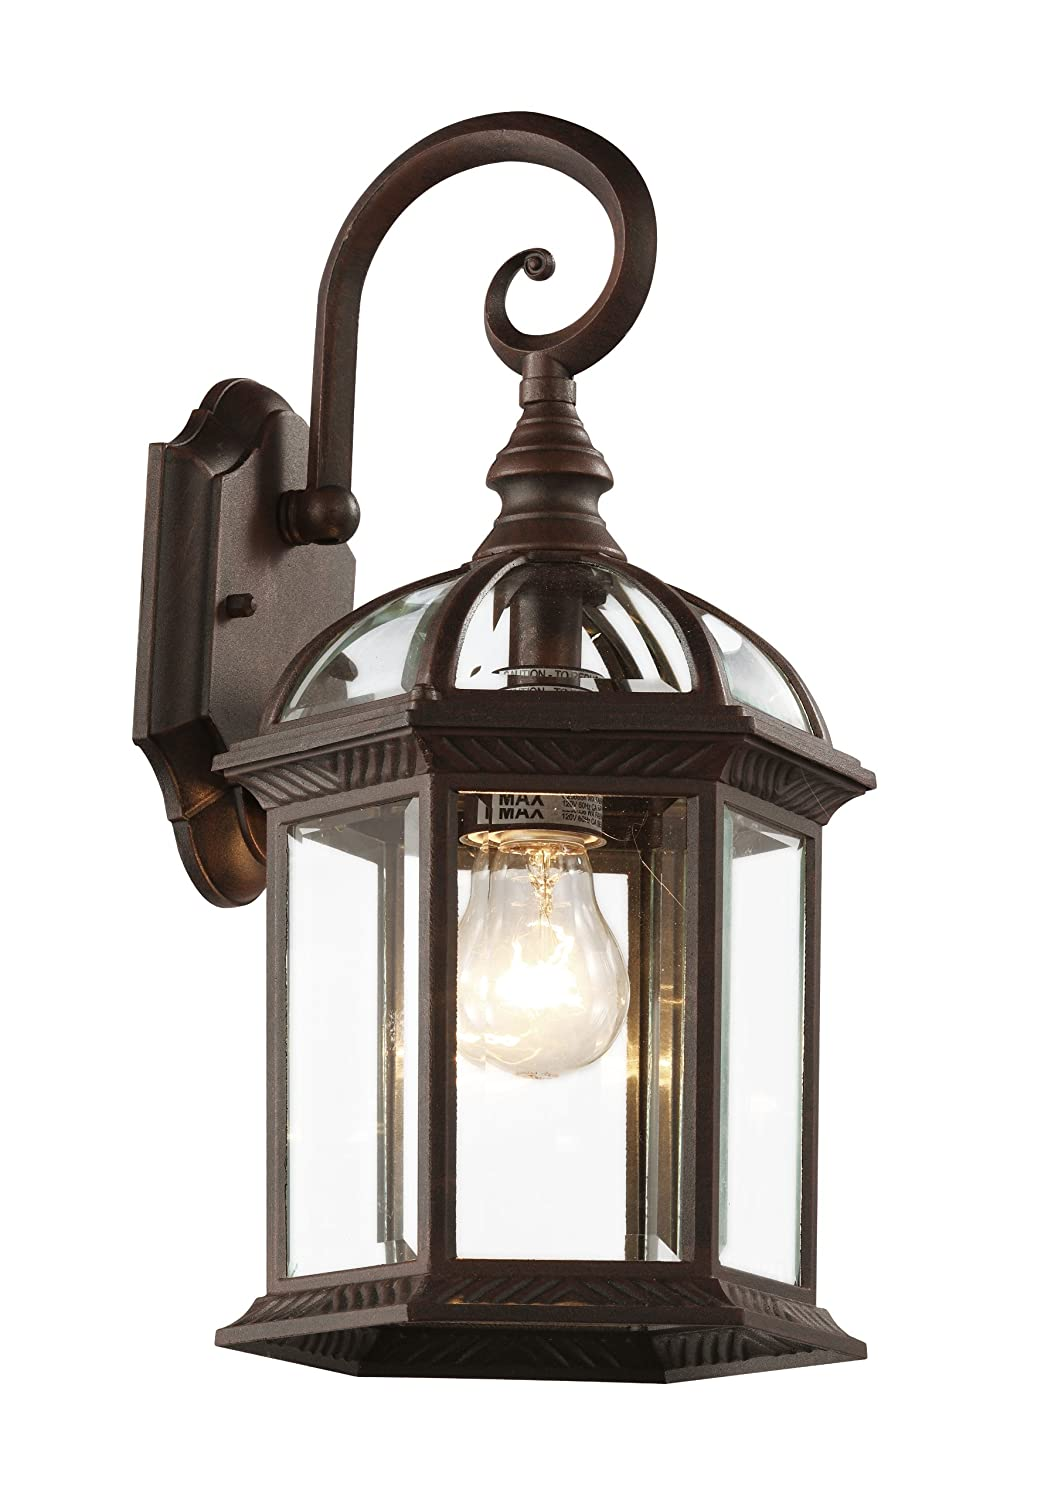 Trans Globe Lighting 4181 BK Outdoor Wentworth 15.75  Wall Lantern Black - Wall Porch Lights - Amazon.com  sc 1 st  Amazon.com & Trans Globe Lighting 4181 BK Outdoor Wentworth 15.75